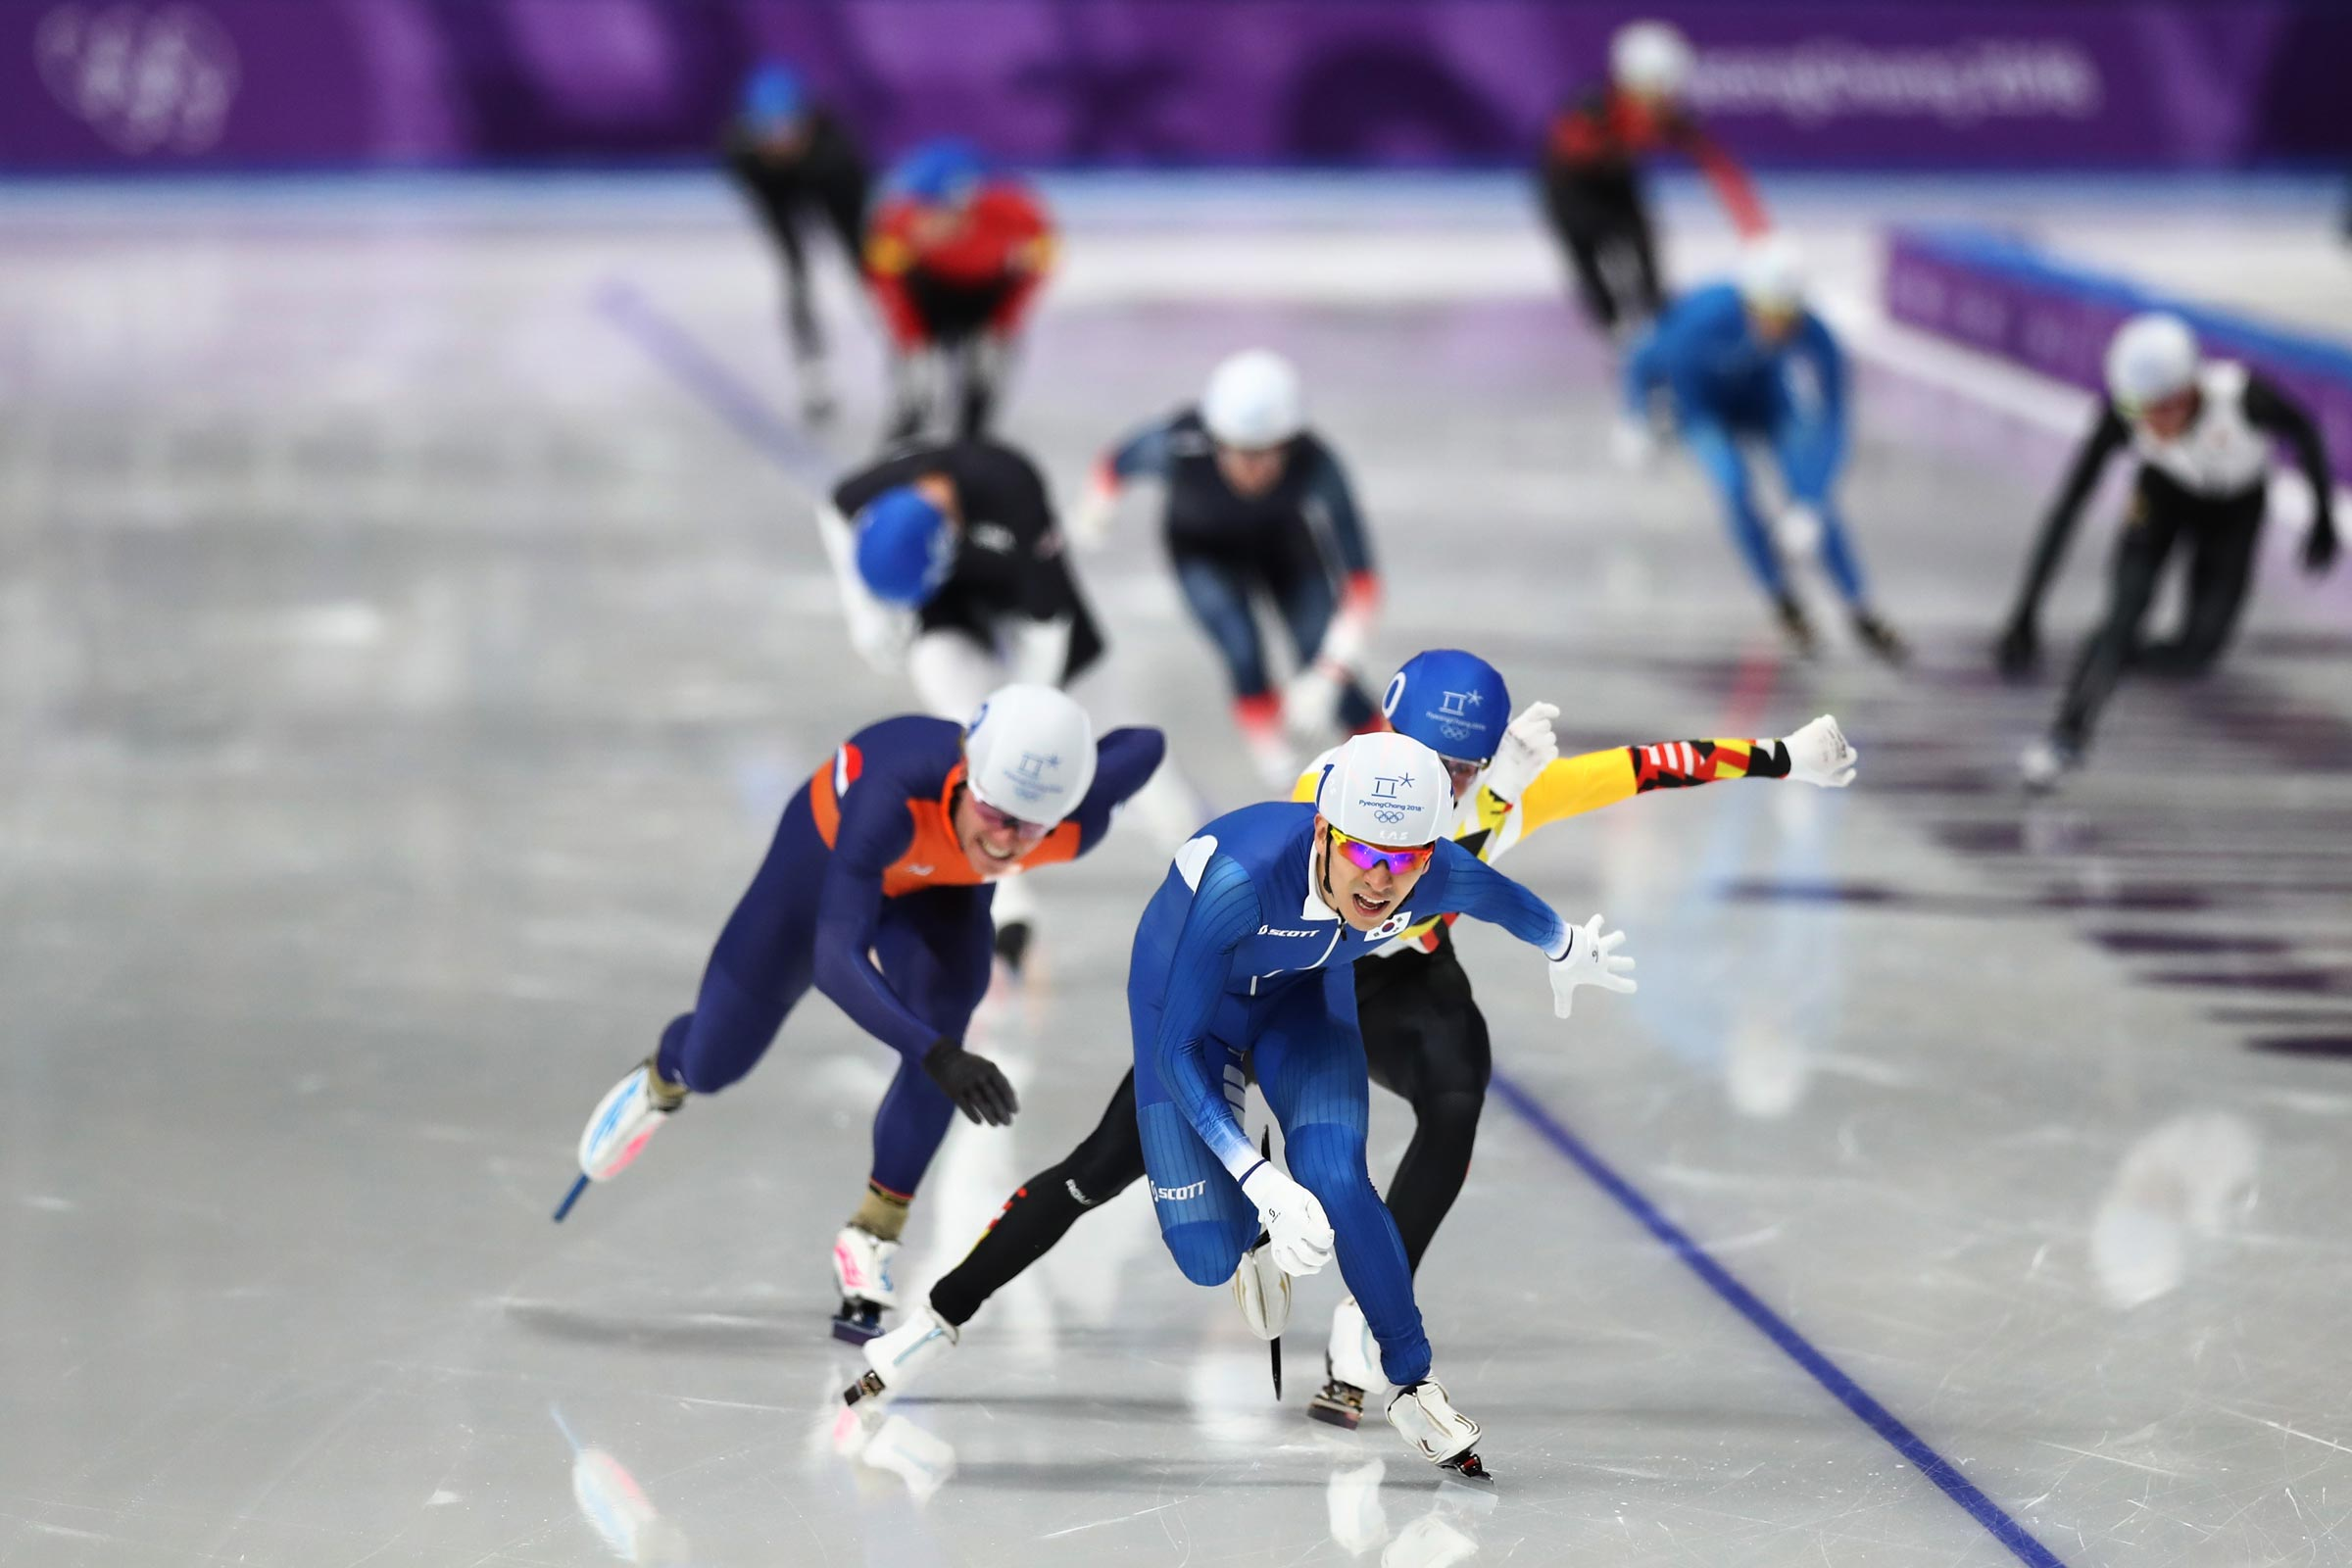 Speed Skating - Men's Mass Start